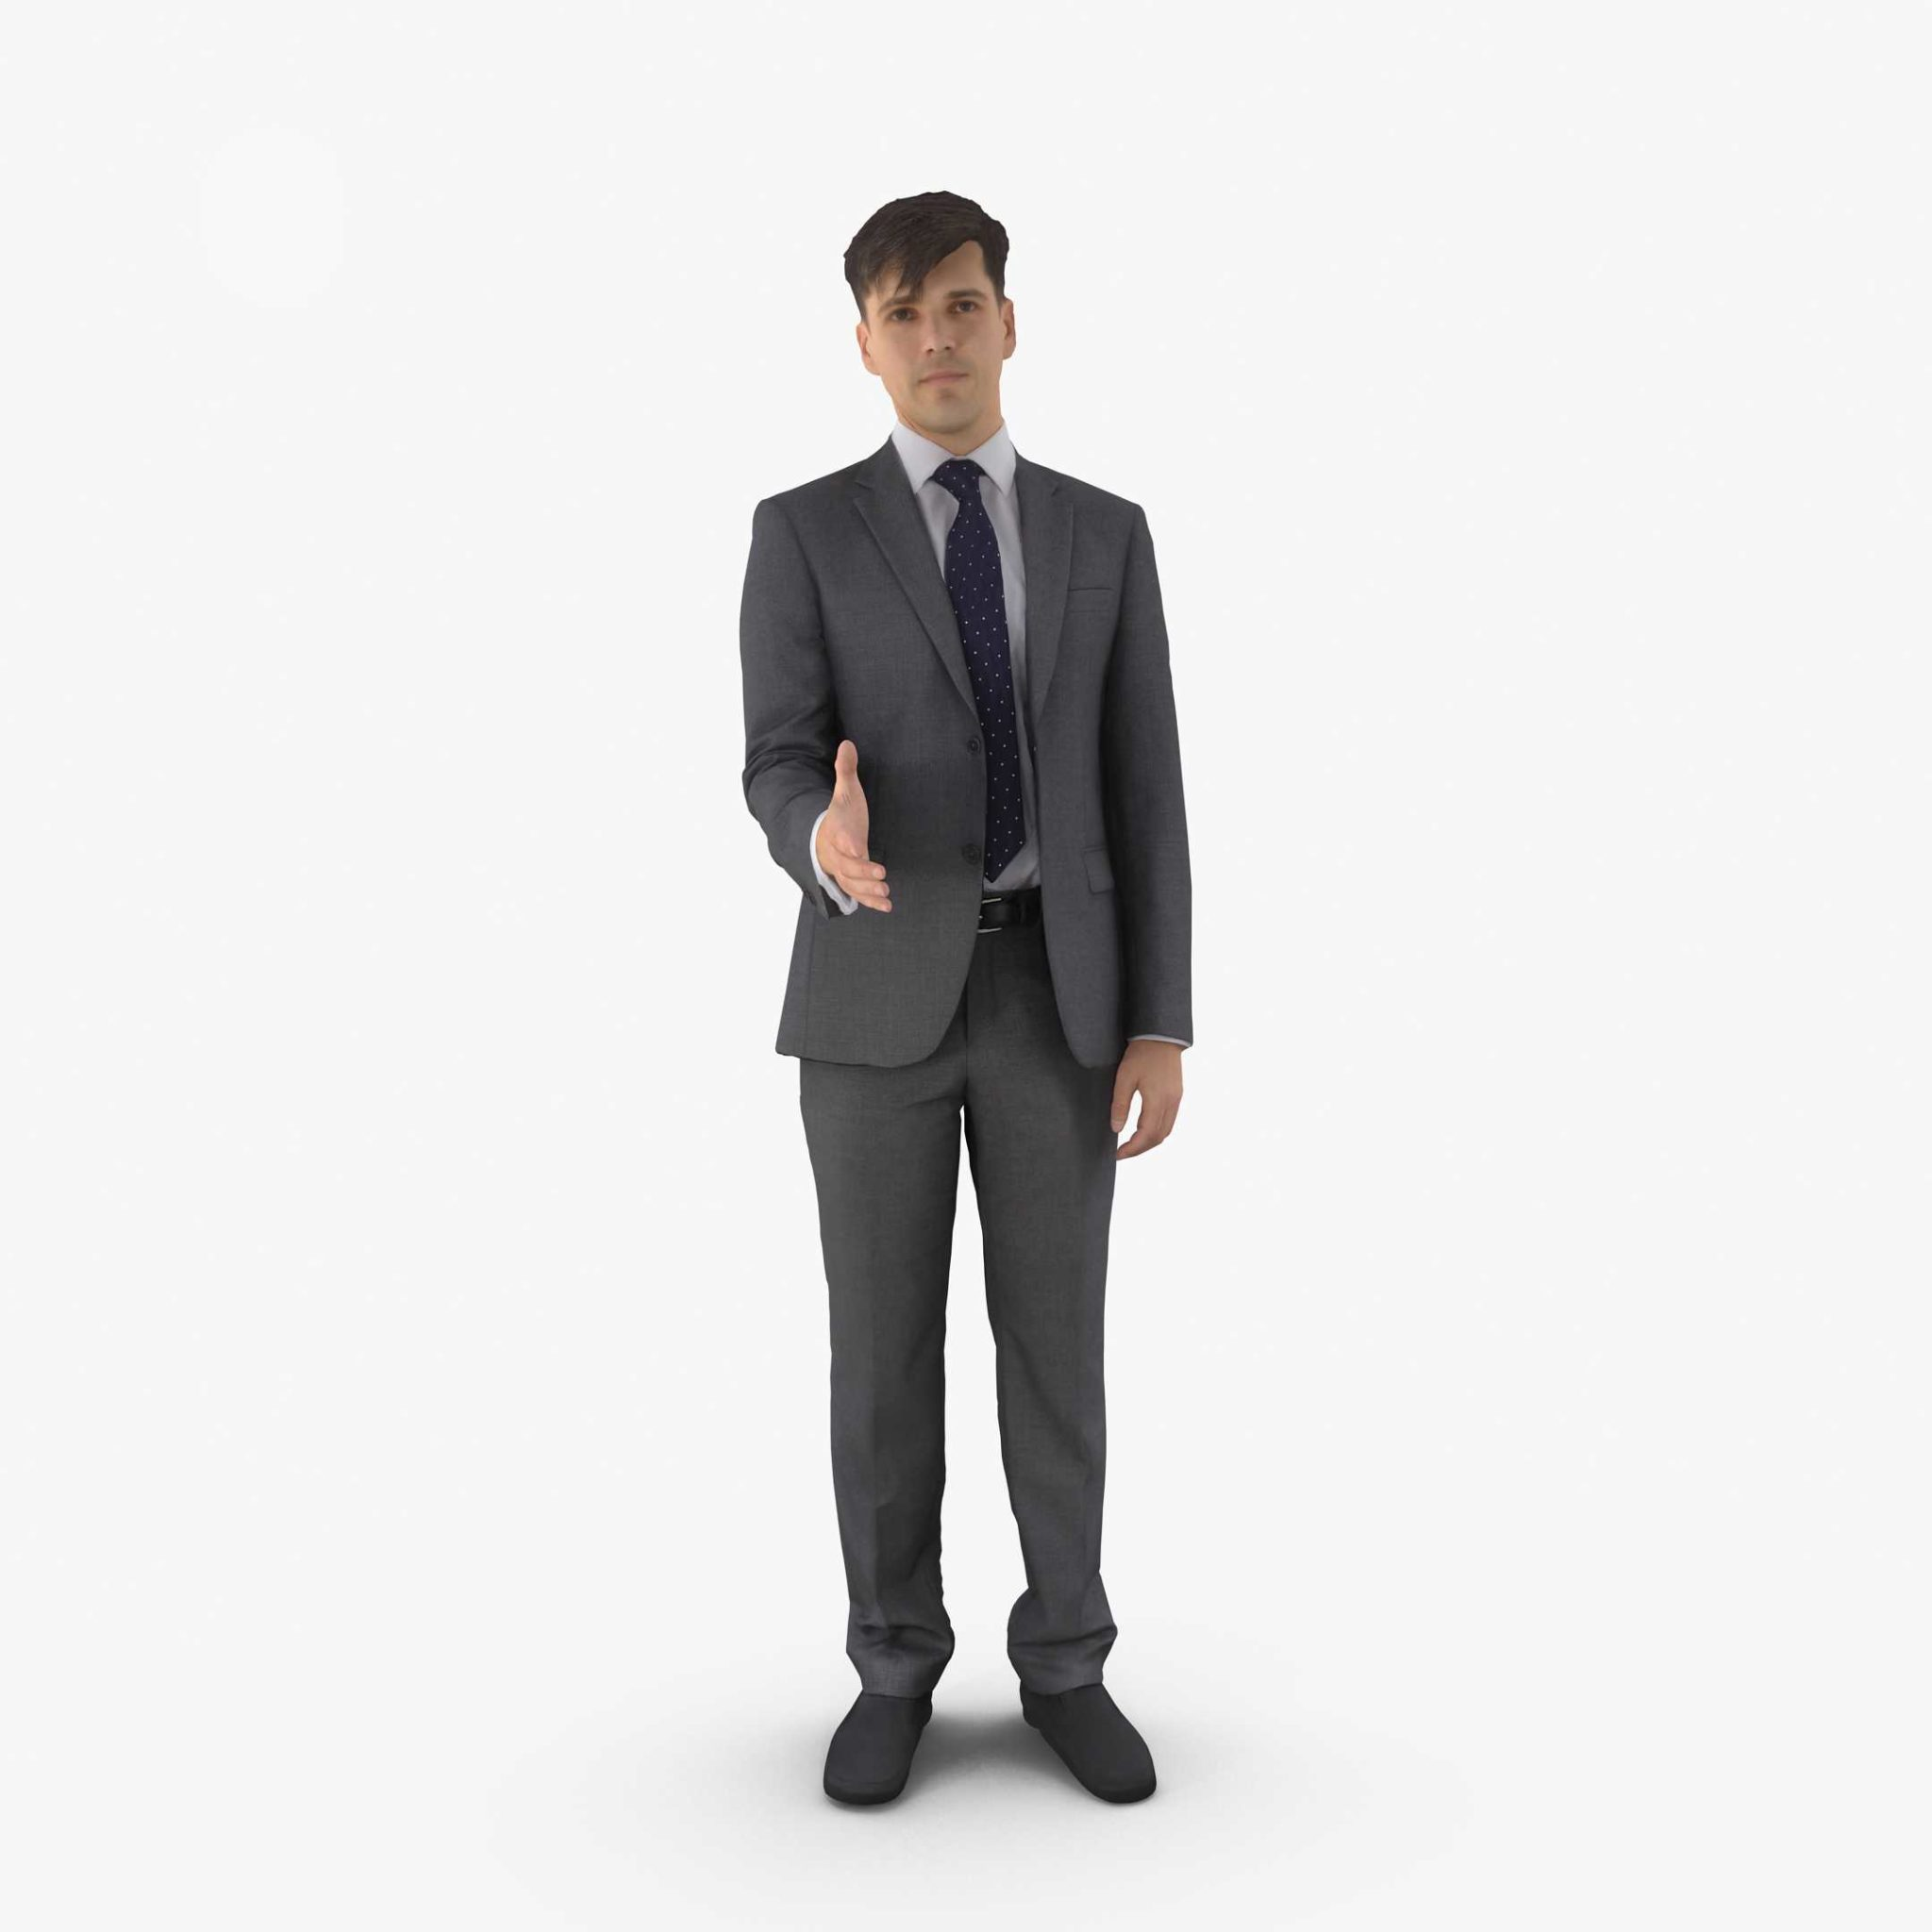 Businessman Greeting 3D Model | 3DTree Scanning Studio